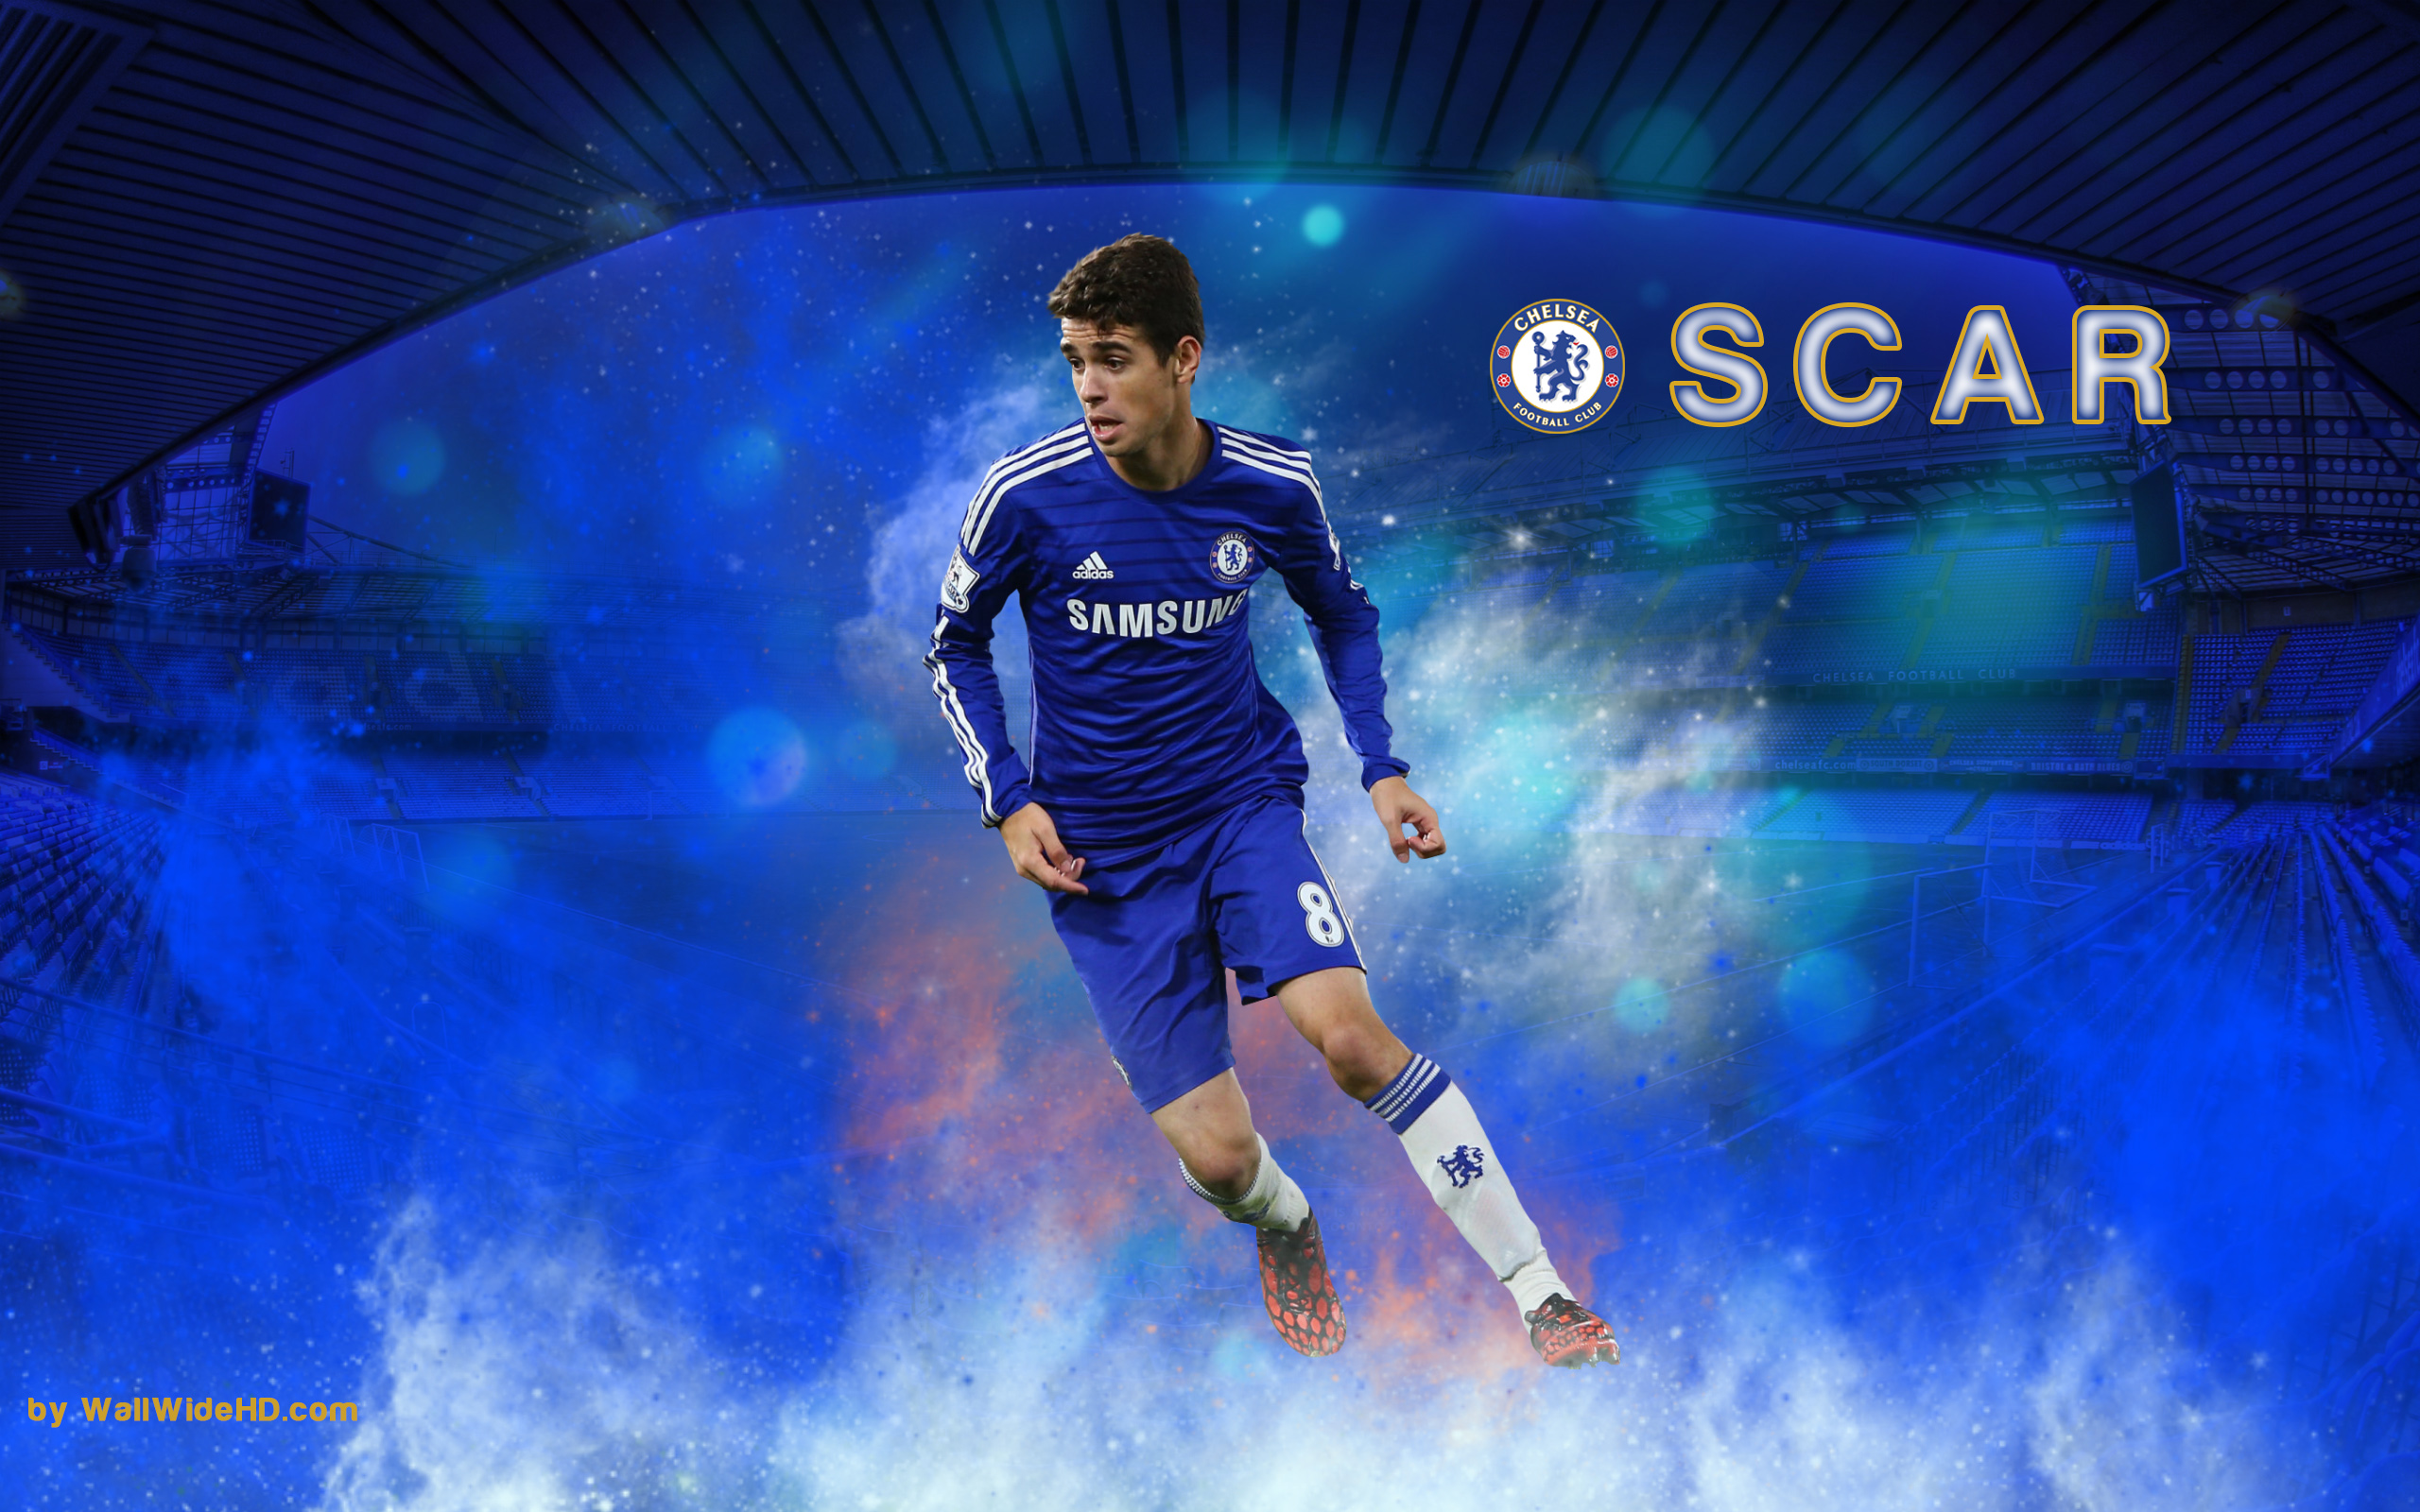 Chelsea FC The Blues Wallpapers Taringa 1600x1000 View 0 If Link Is Broken Please REPORT To Us Thank You 2560x1600